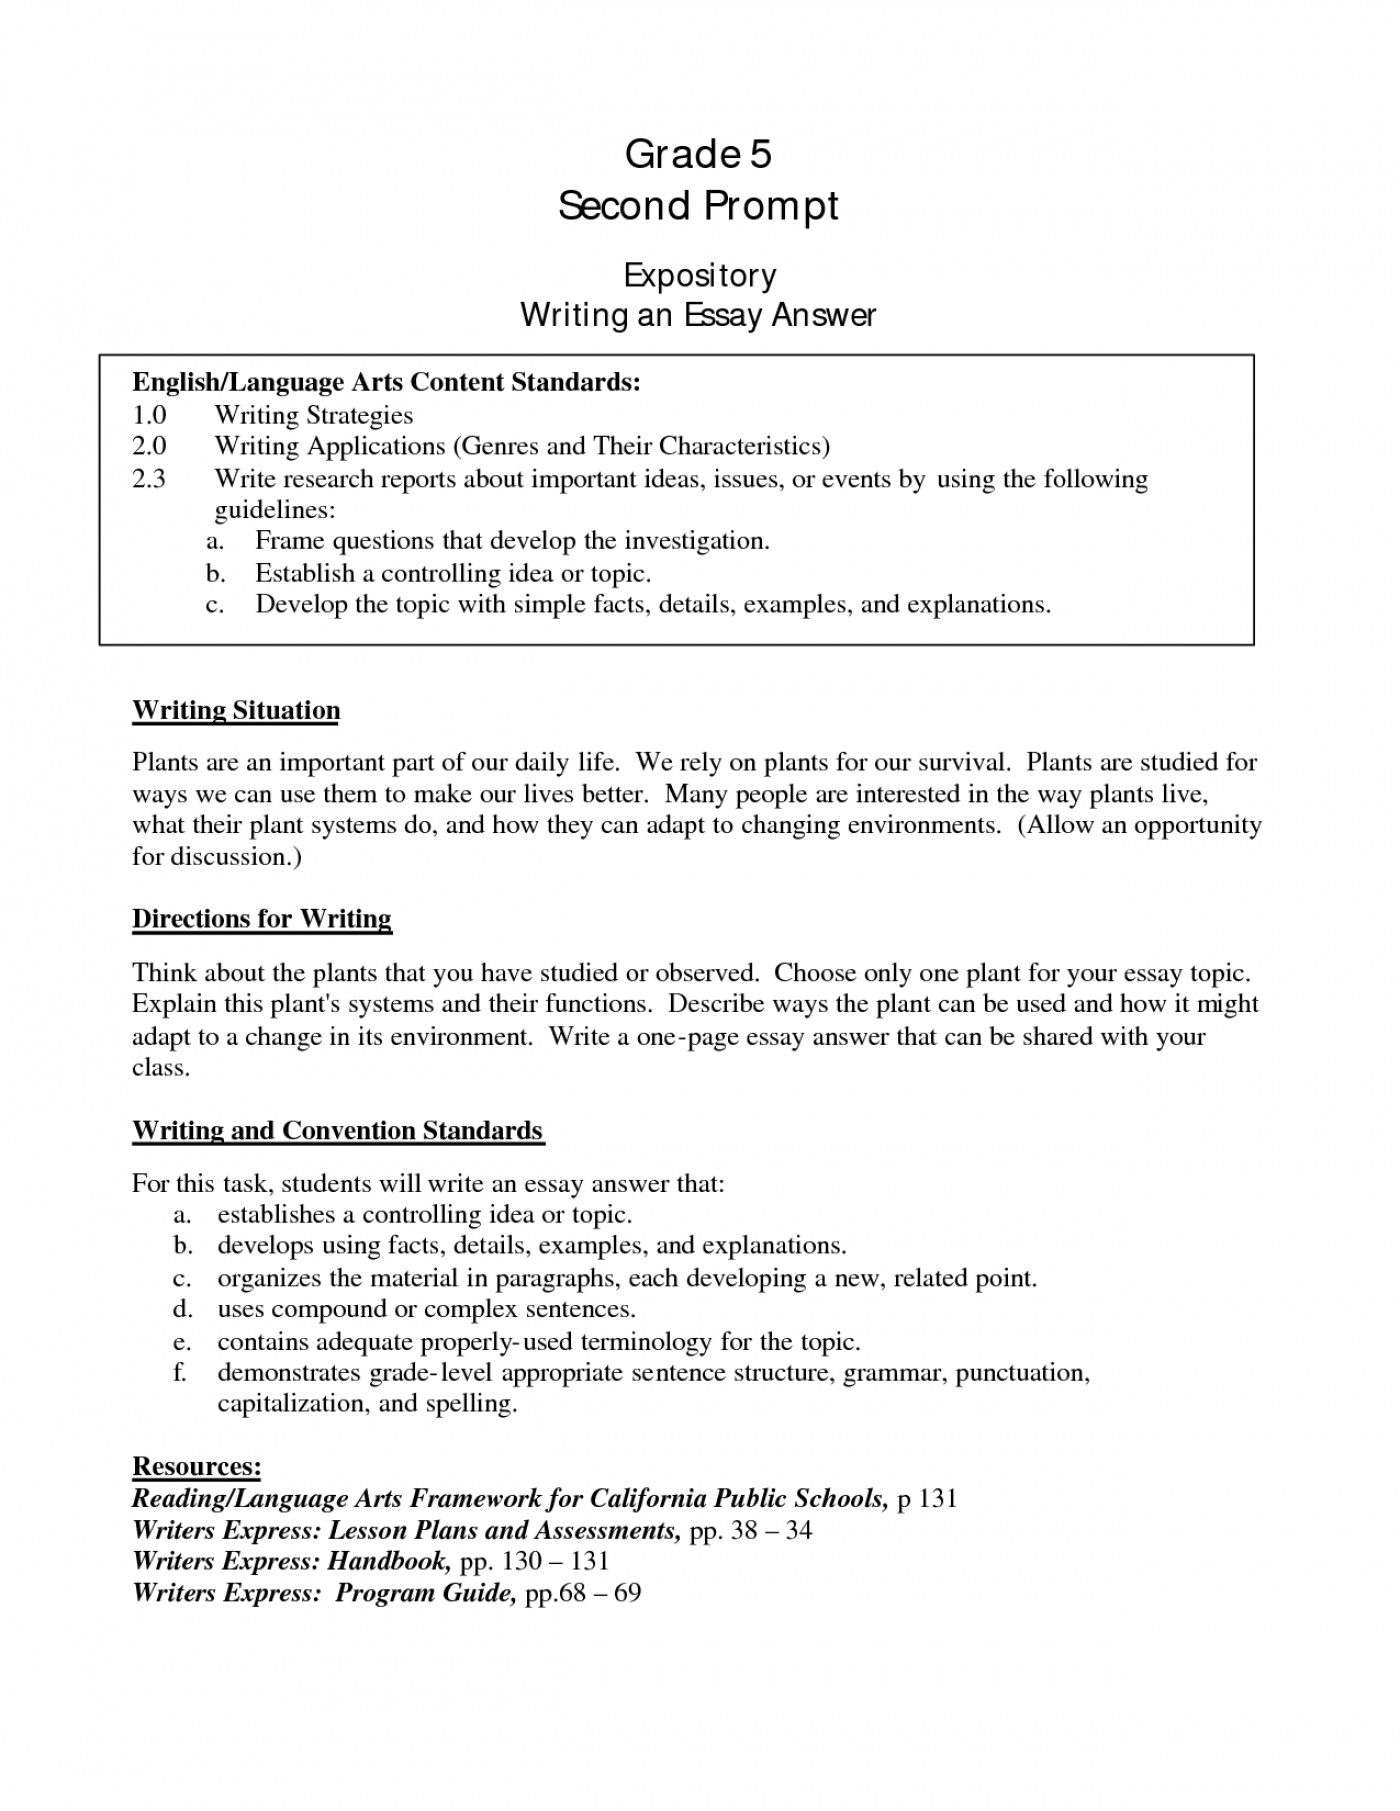 006 Essay Example Expository Introduction Of An Paper Intorduction For Research Best Bunch Ideas Writing Examples Epic Introductions Resumess Explanatory Fascinating Topics Informative College High School Prompt 4th Grade 1400